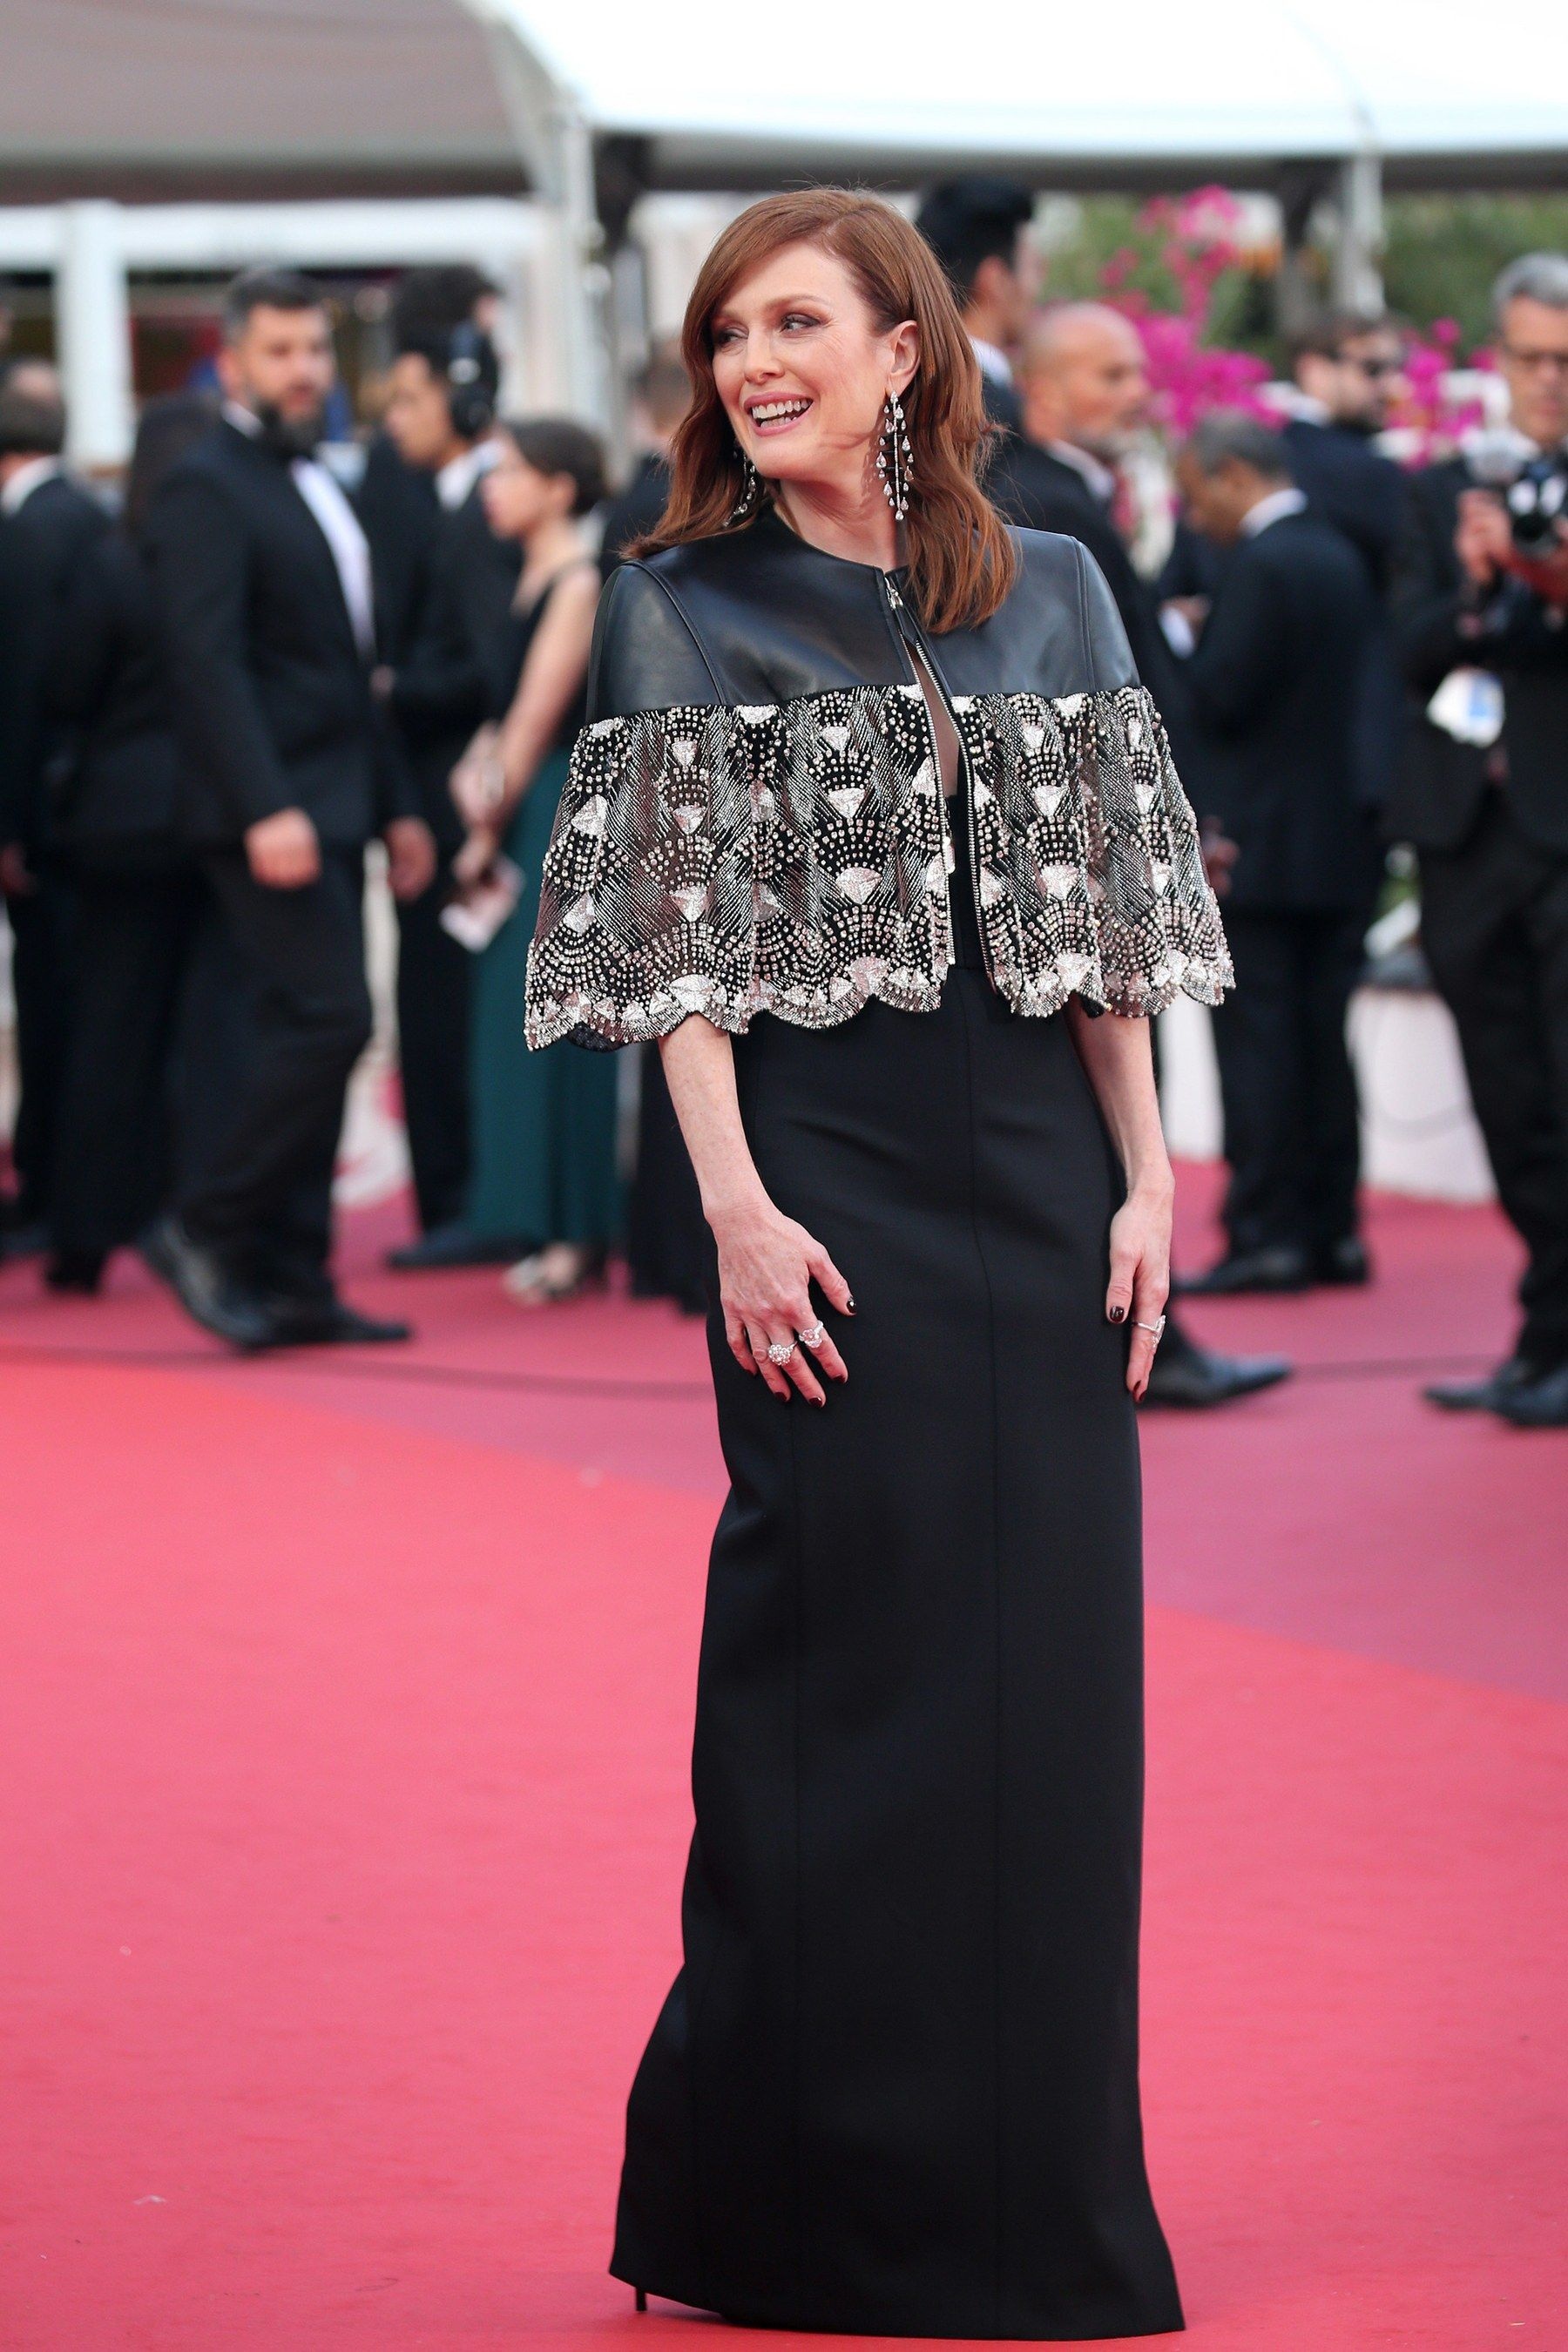 Best Dressed International Models And Actress At Cannes Film Festival 2016 - 6th Day